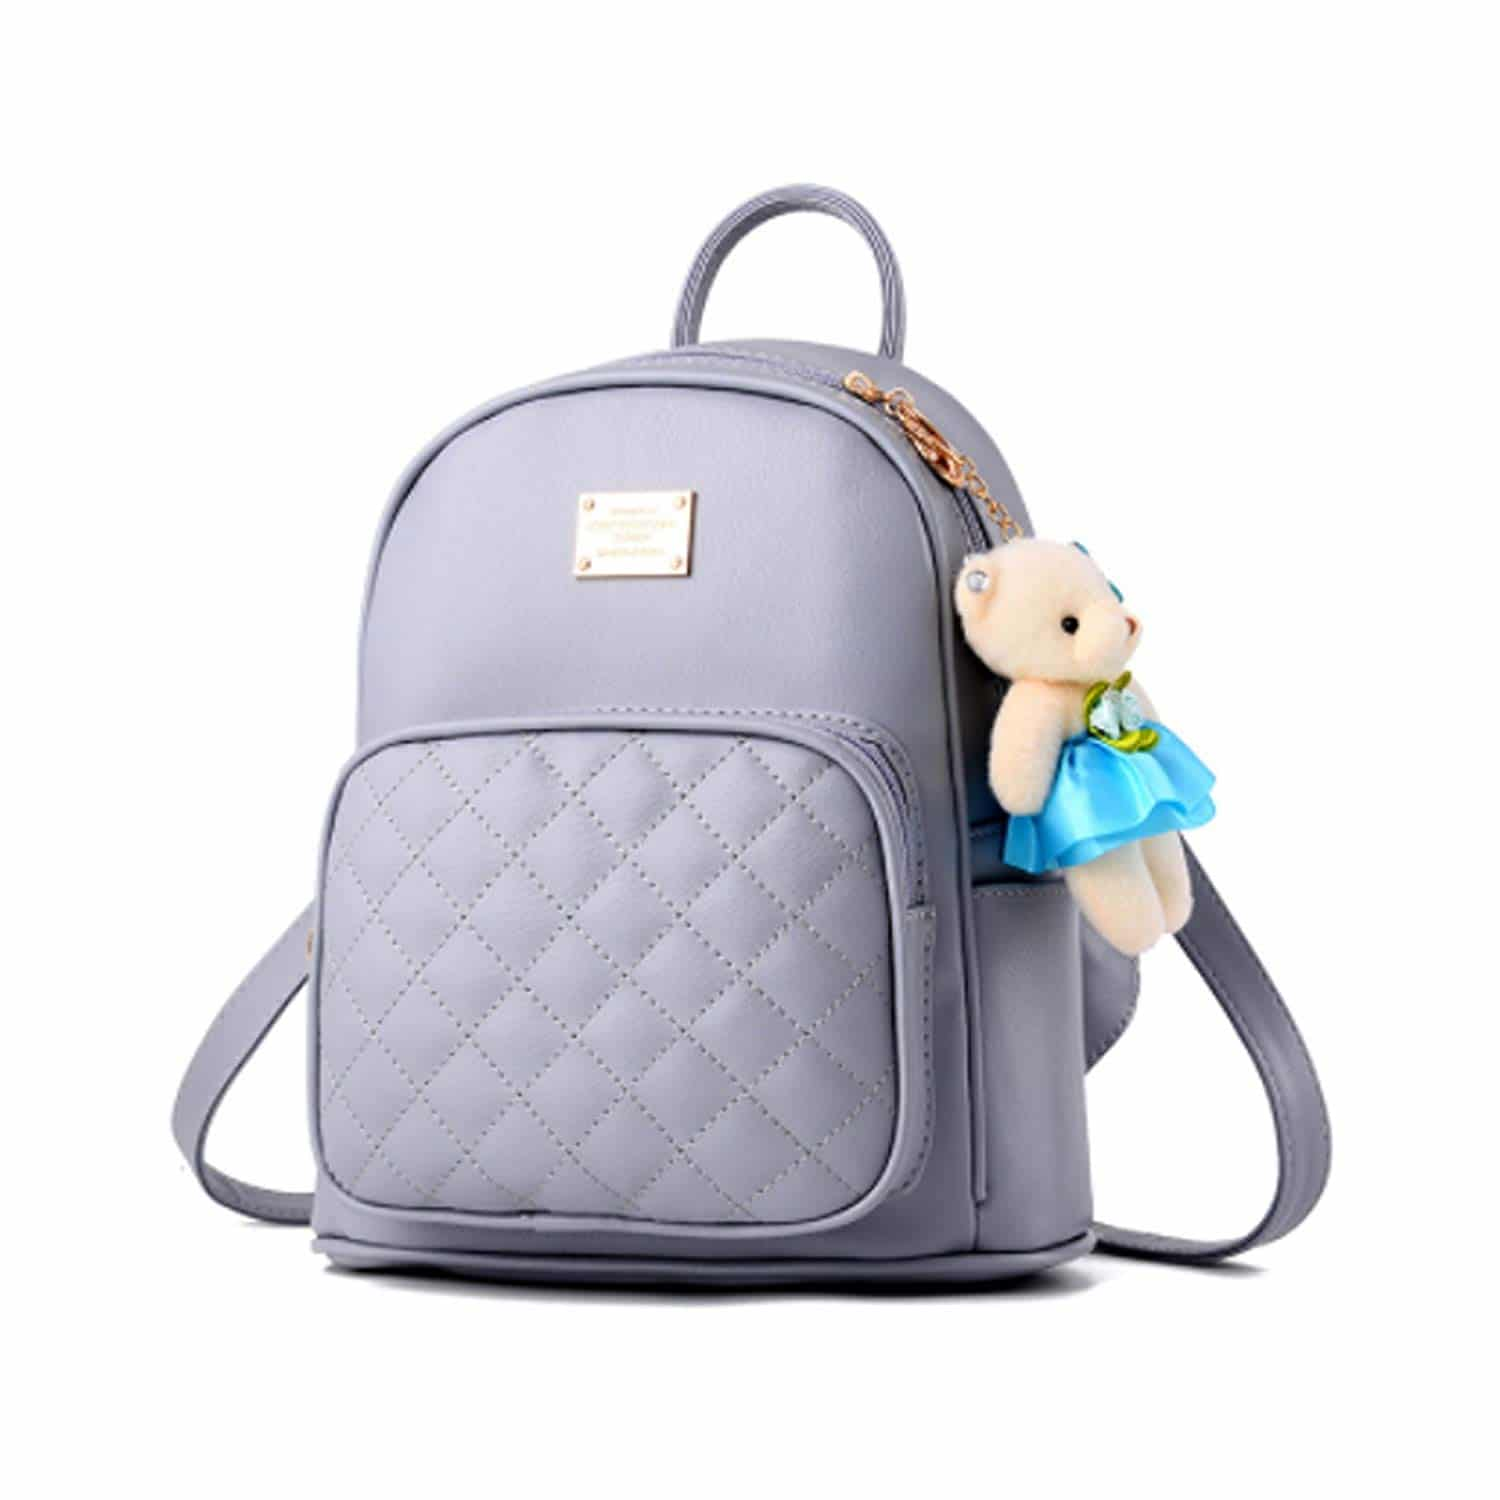 2167d655b5ce Top 5 best cute mini backpacks cheap in 2019 review - A Best Pro